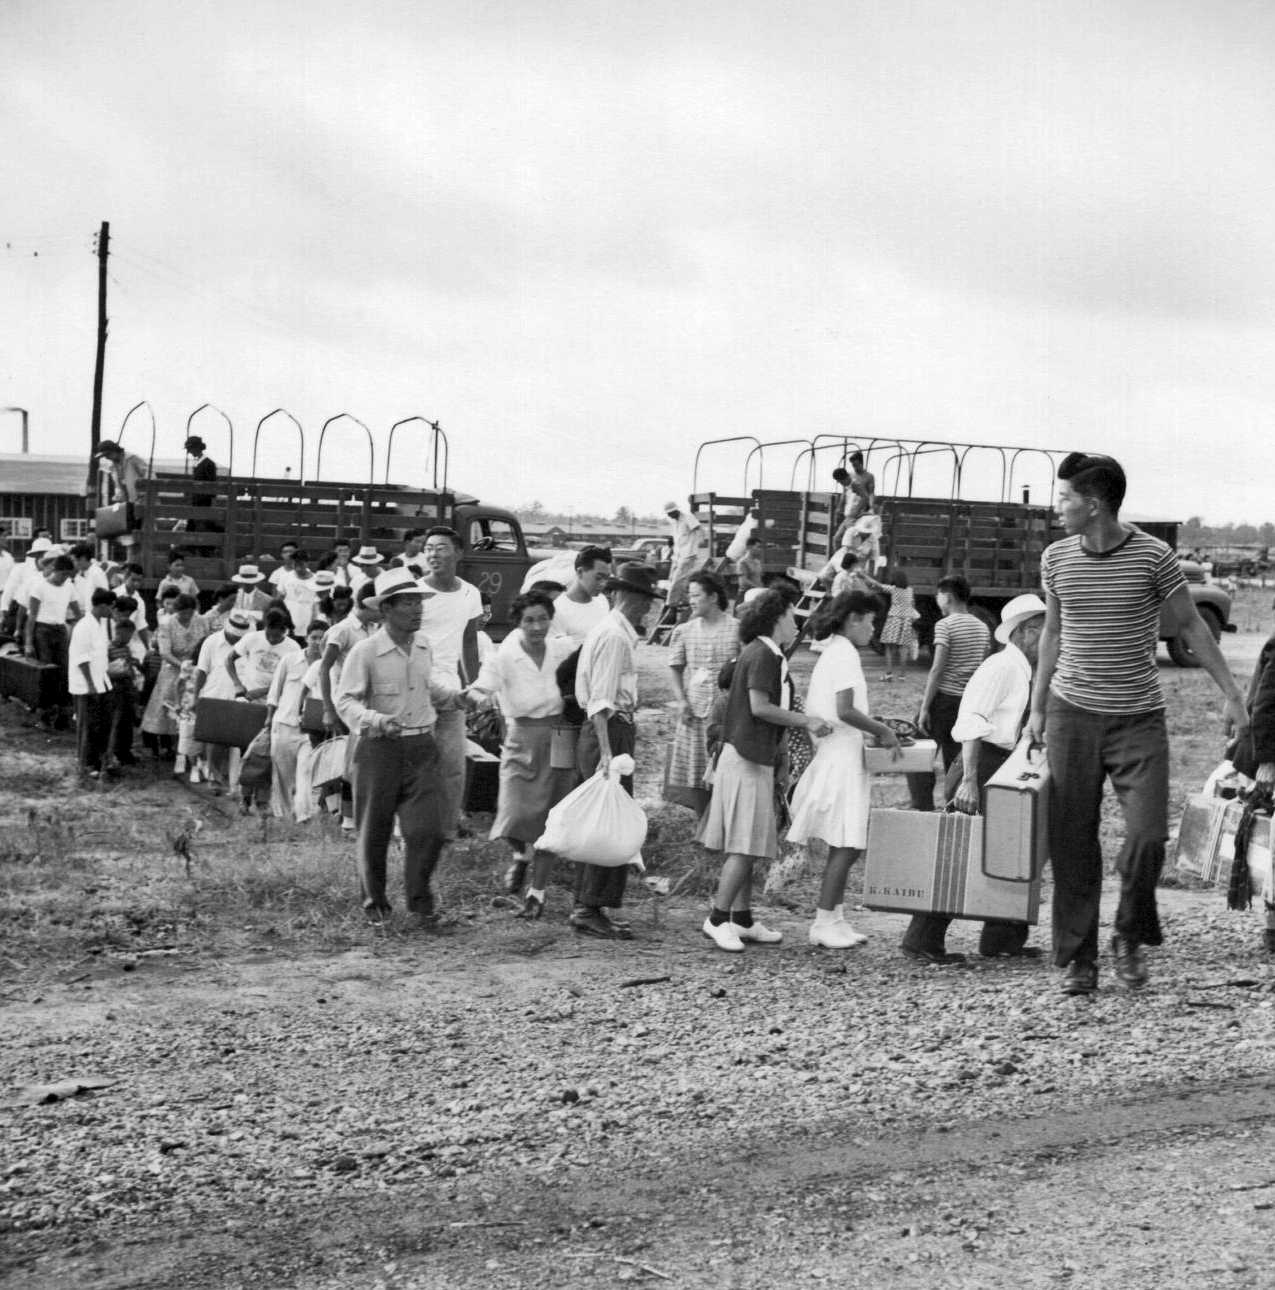 japanese internment camps essay thesis Free japanese internment camps papers, essays, and research papers.